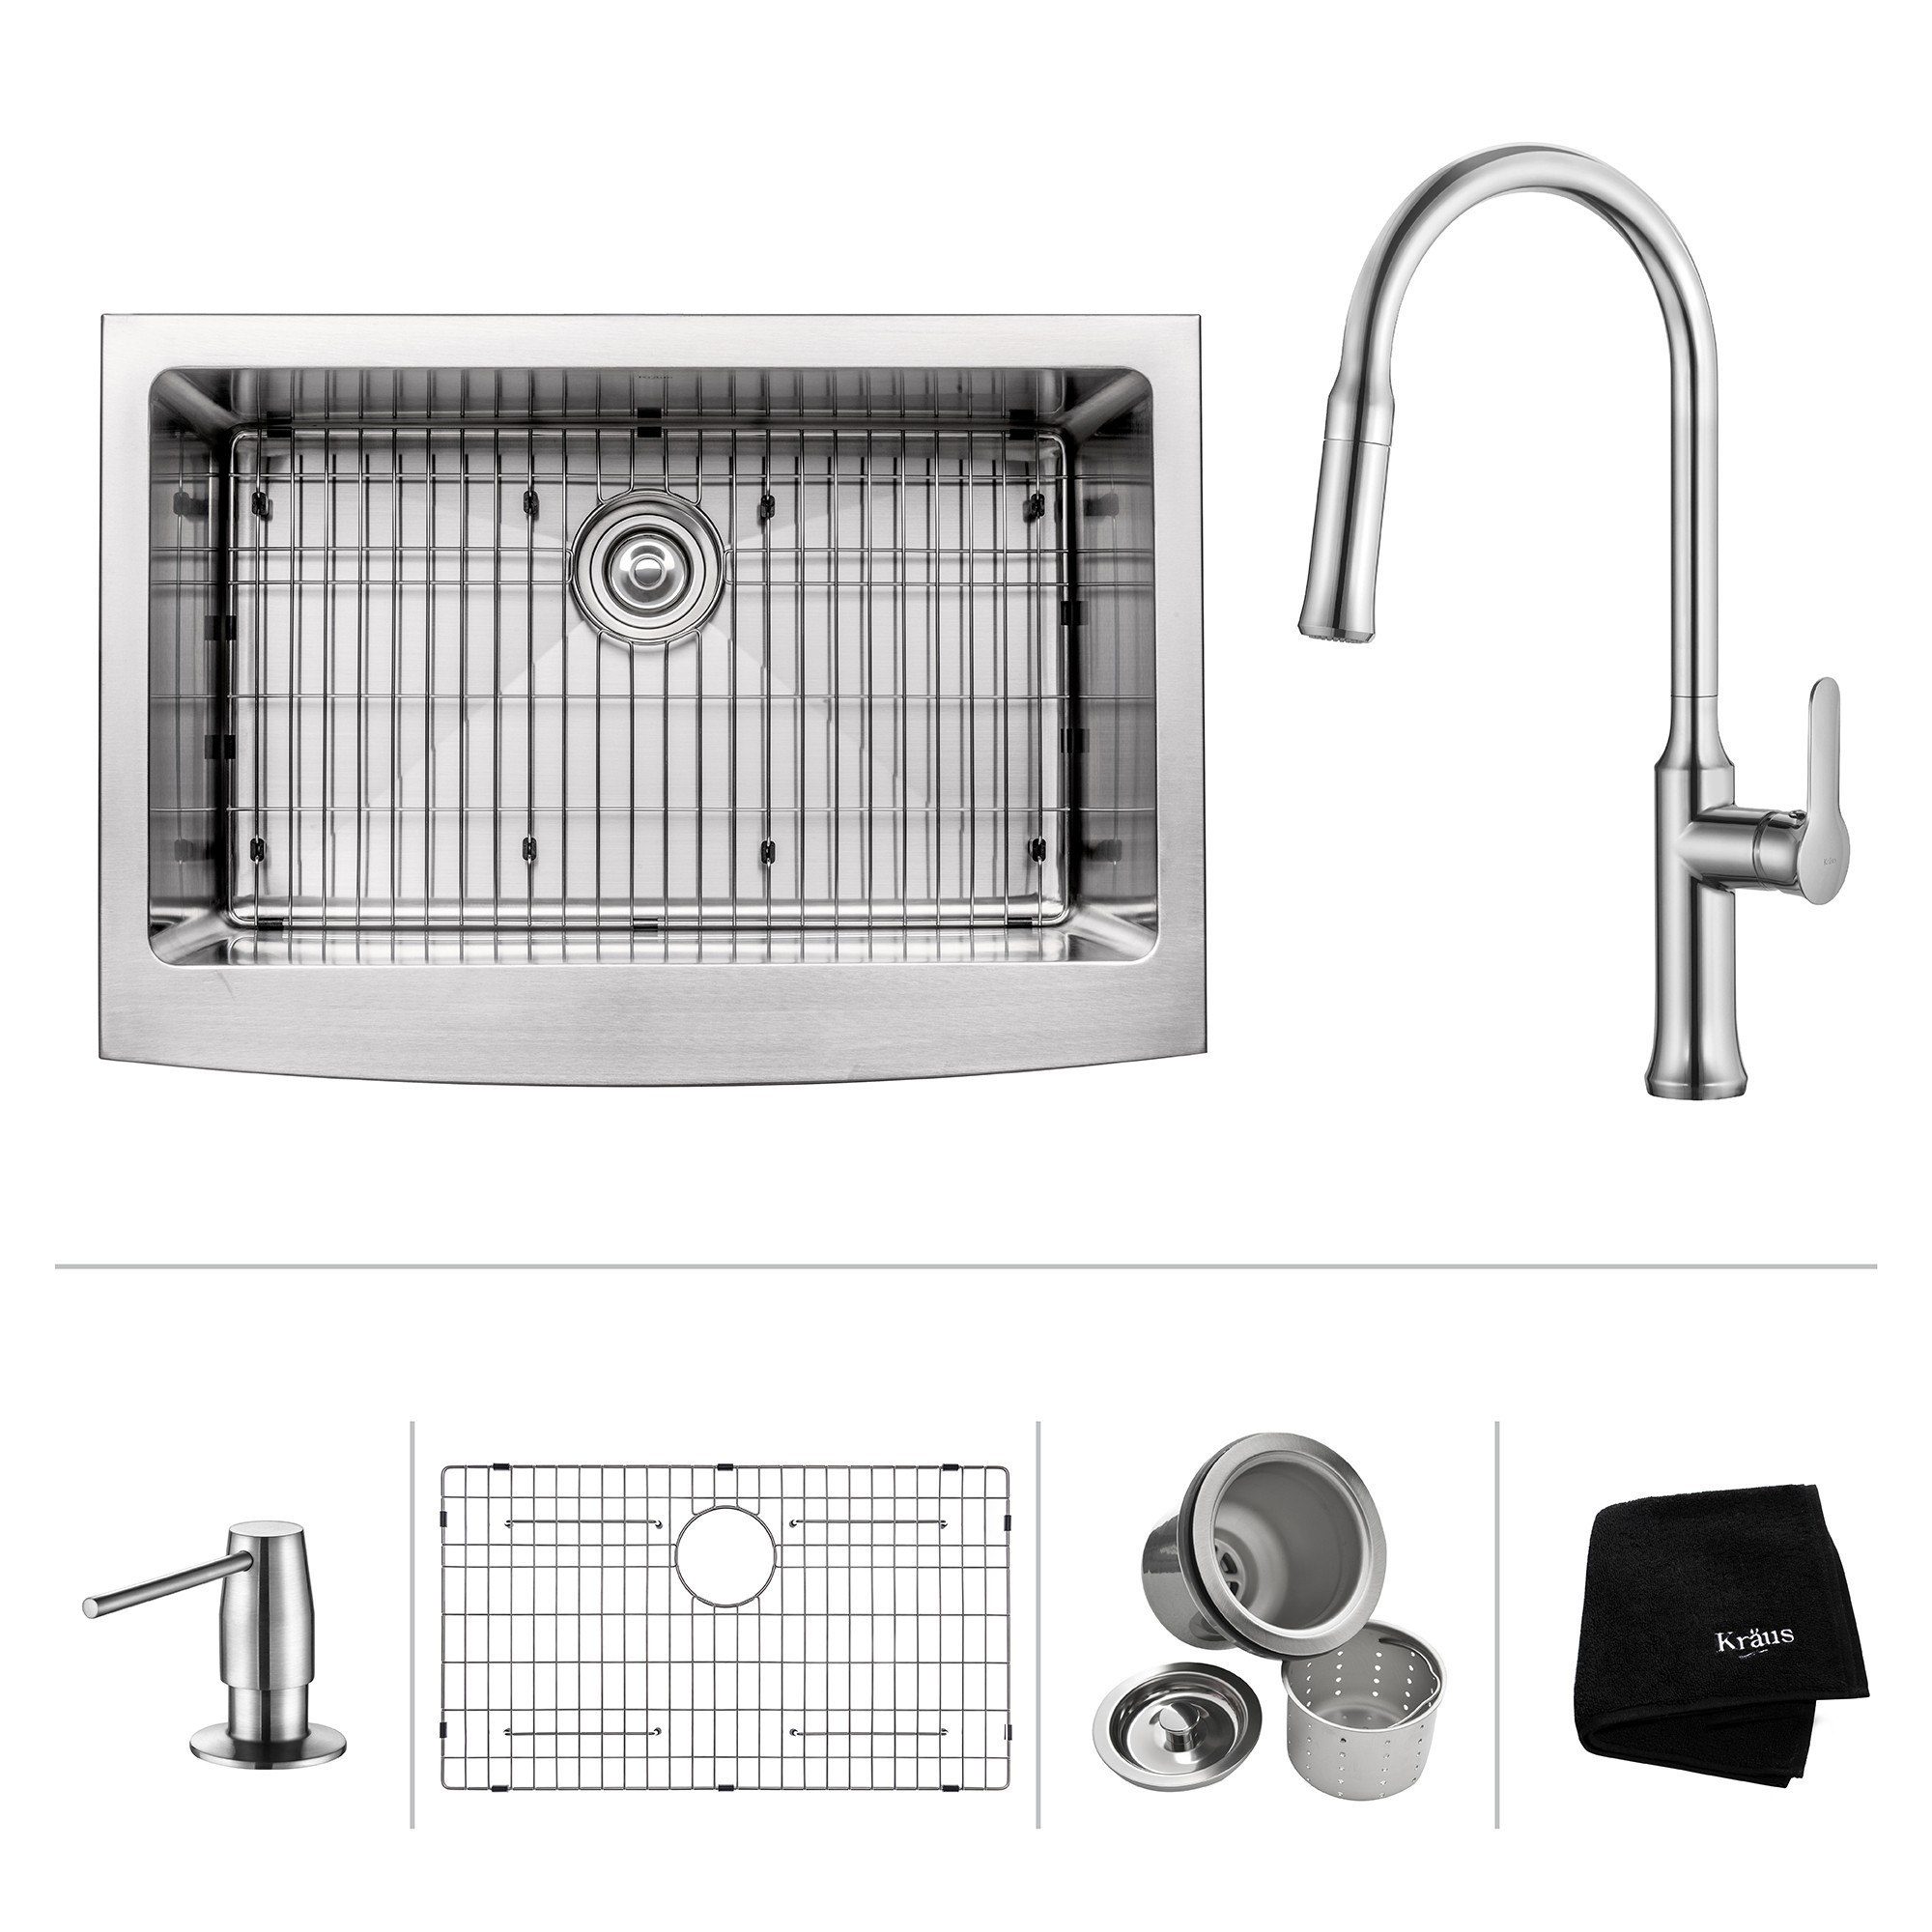 Kraus KHF200-30-1630-42 30 Inch Apron Front Single Bowl Stainless Steel Sink with Pull Down Faucet & Soap Dispenser